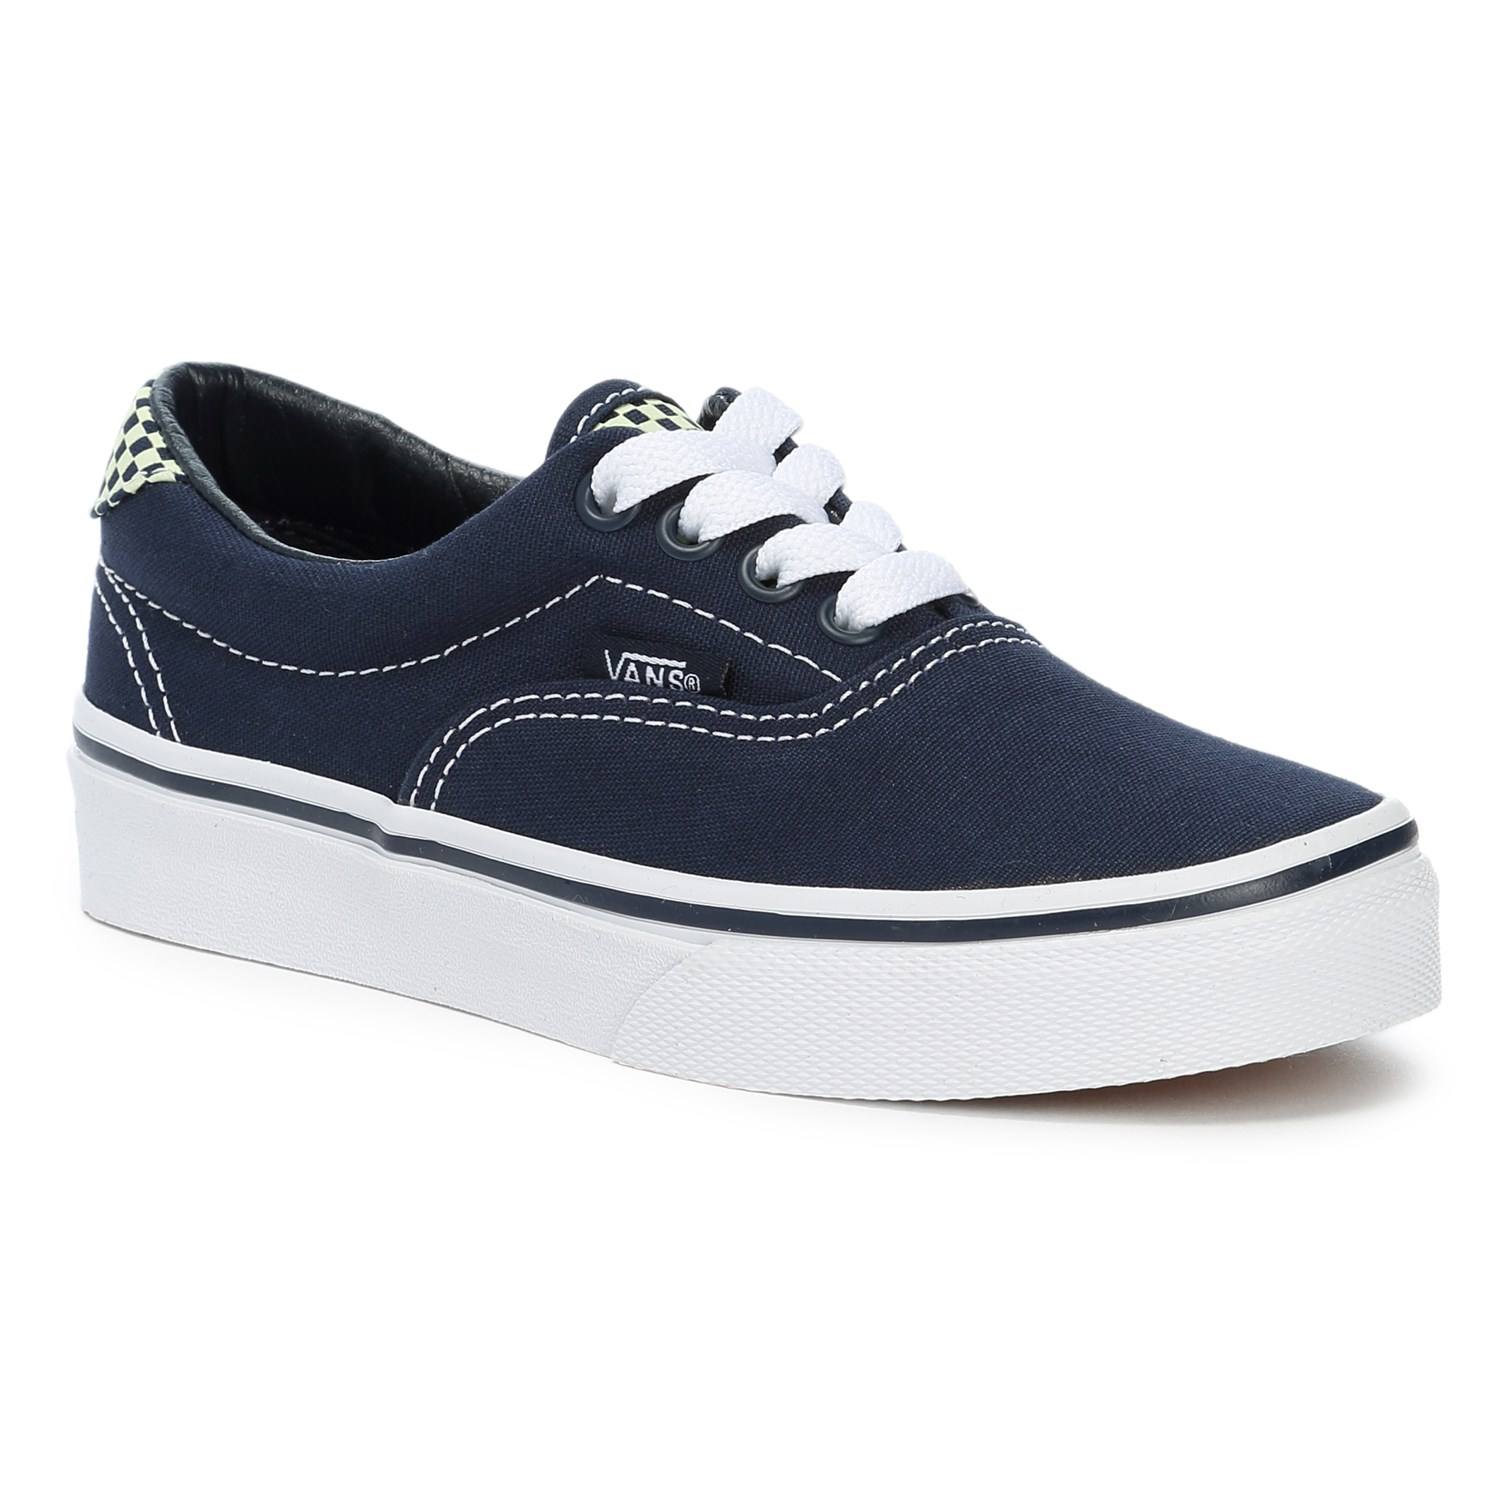 vans philippines website > OFF51% Discounts